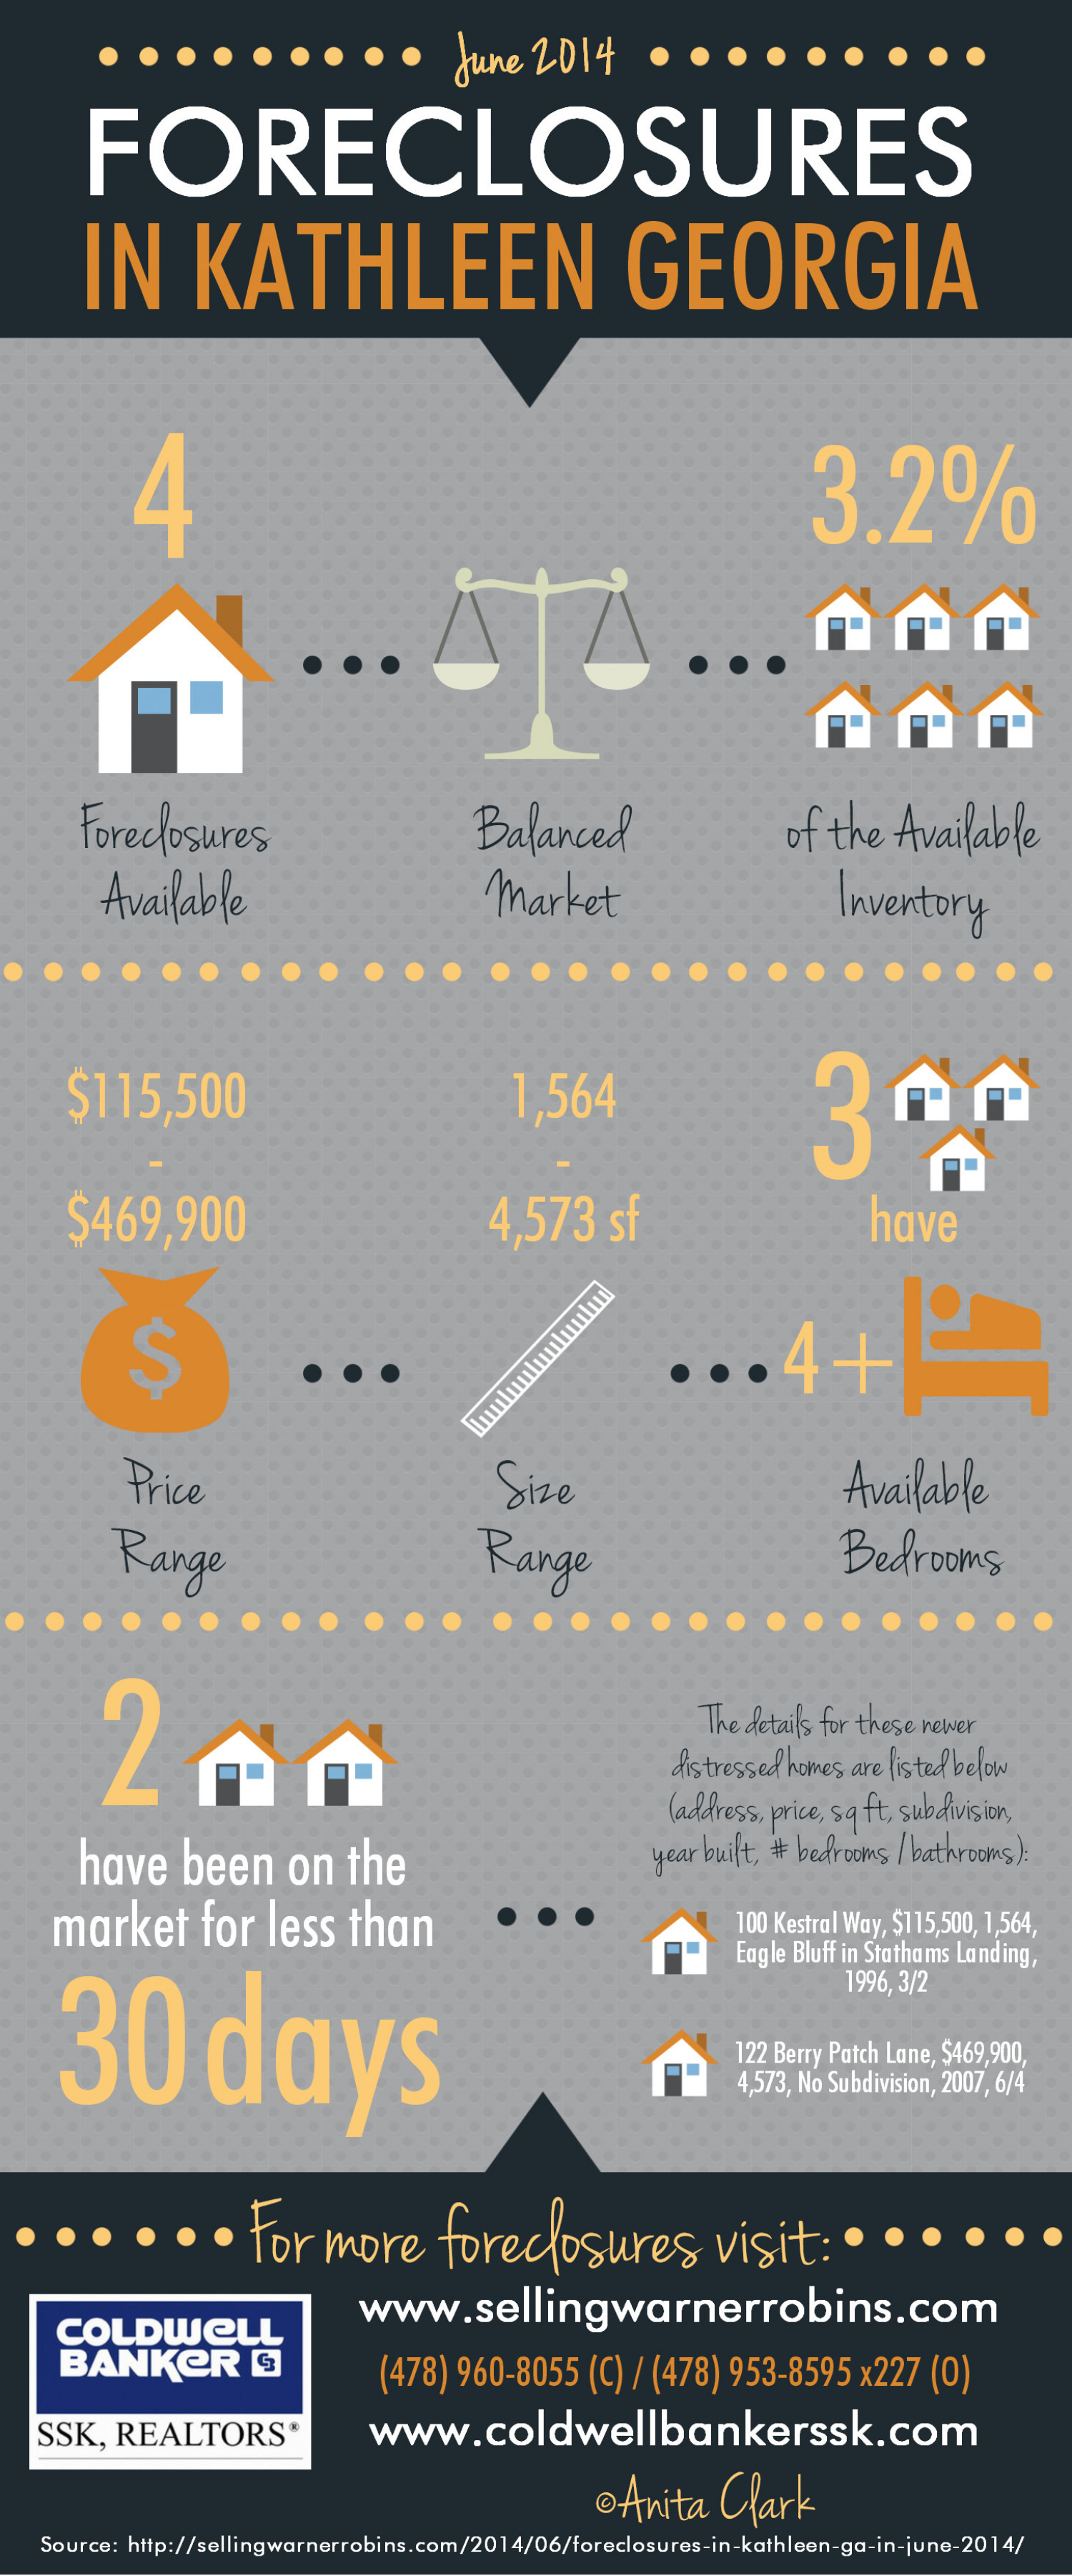 Foreclosures in Kathleen GA for June 2014 Infographic